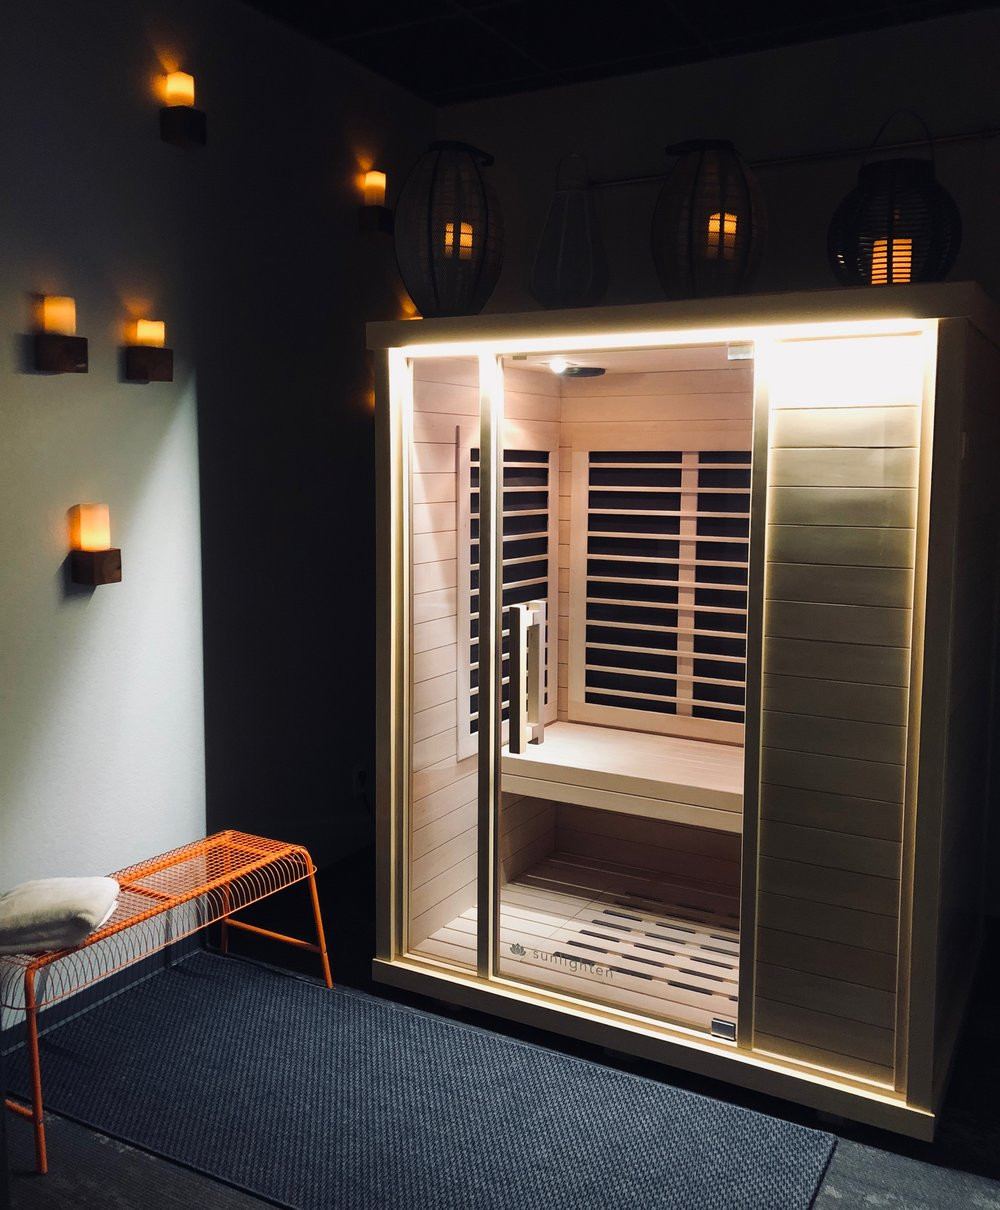 We also offer Infrared Sauna